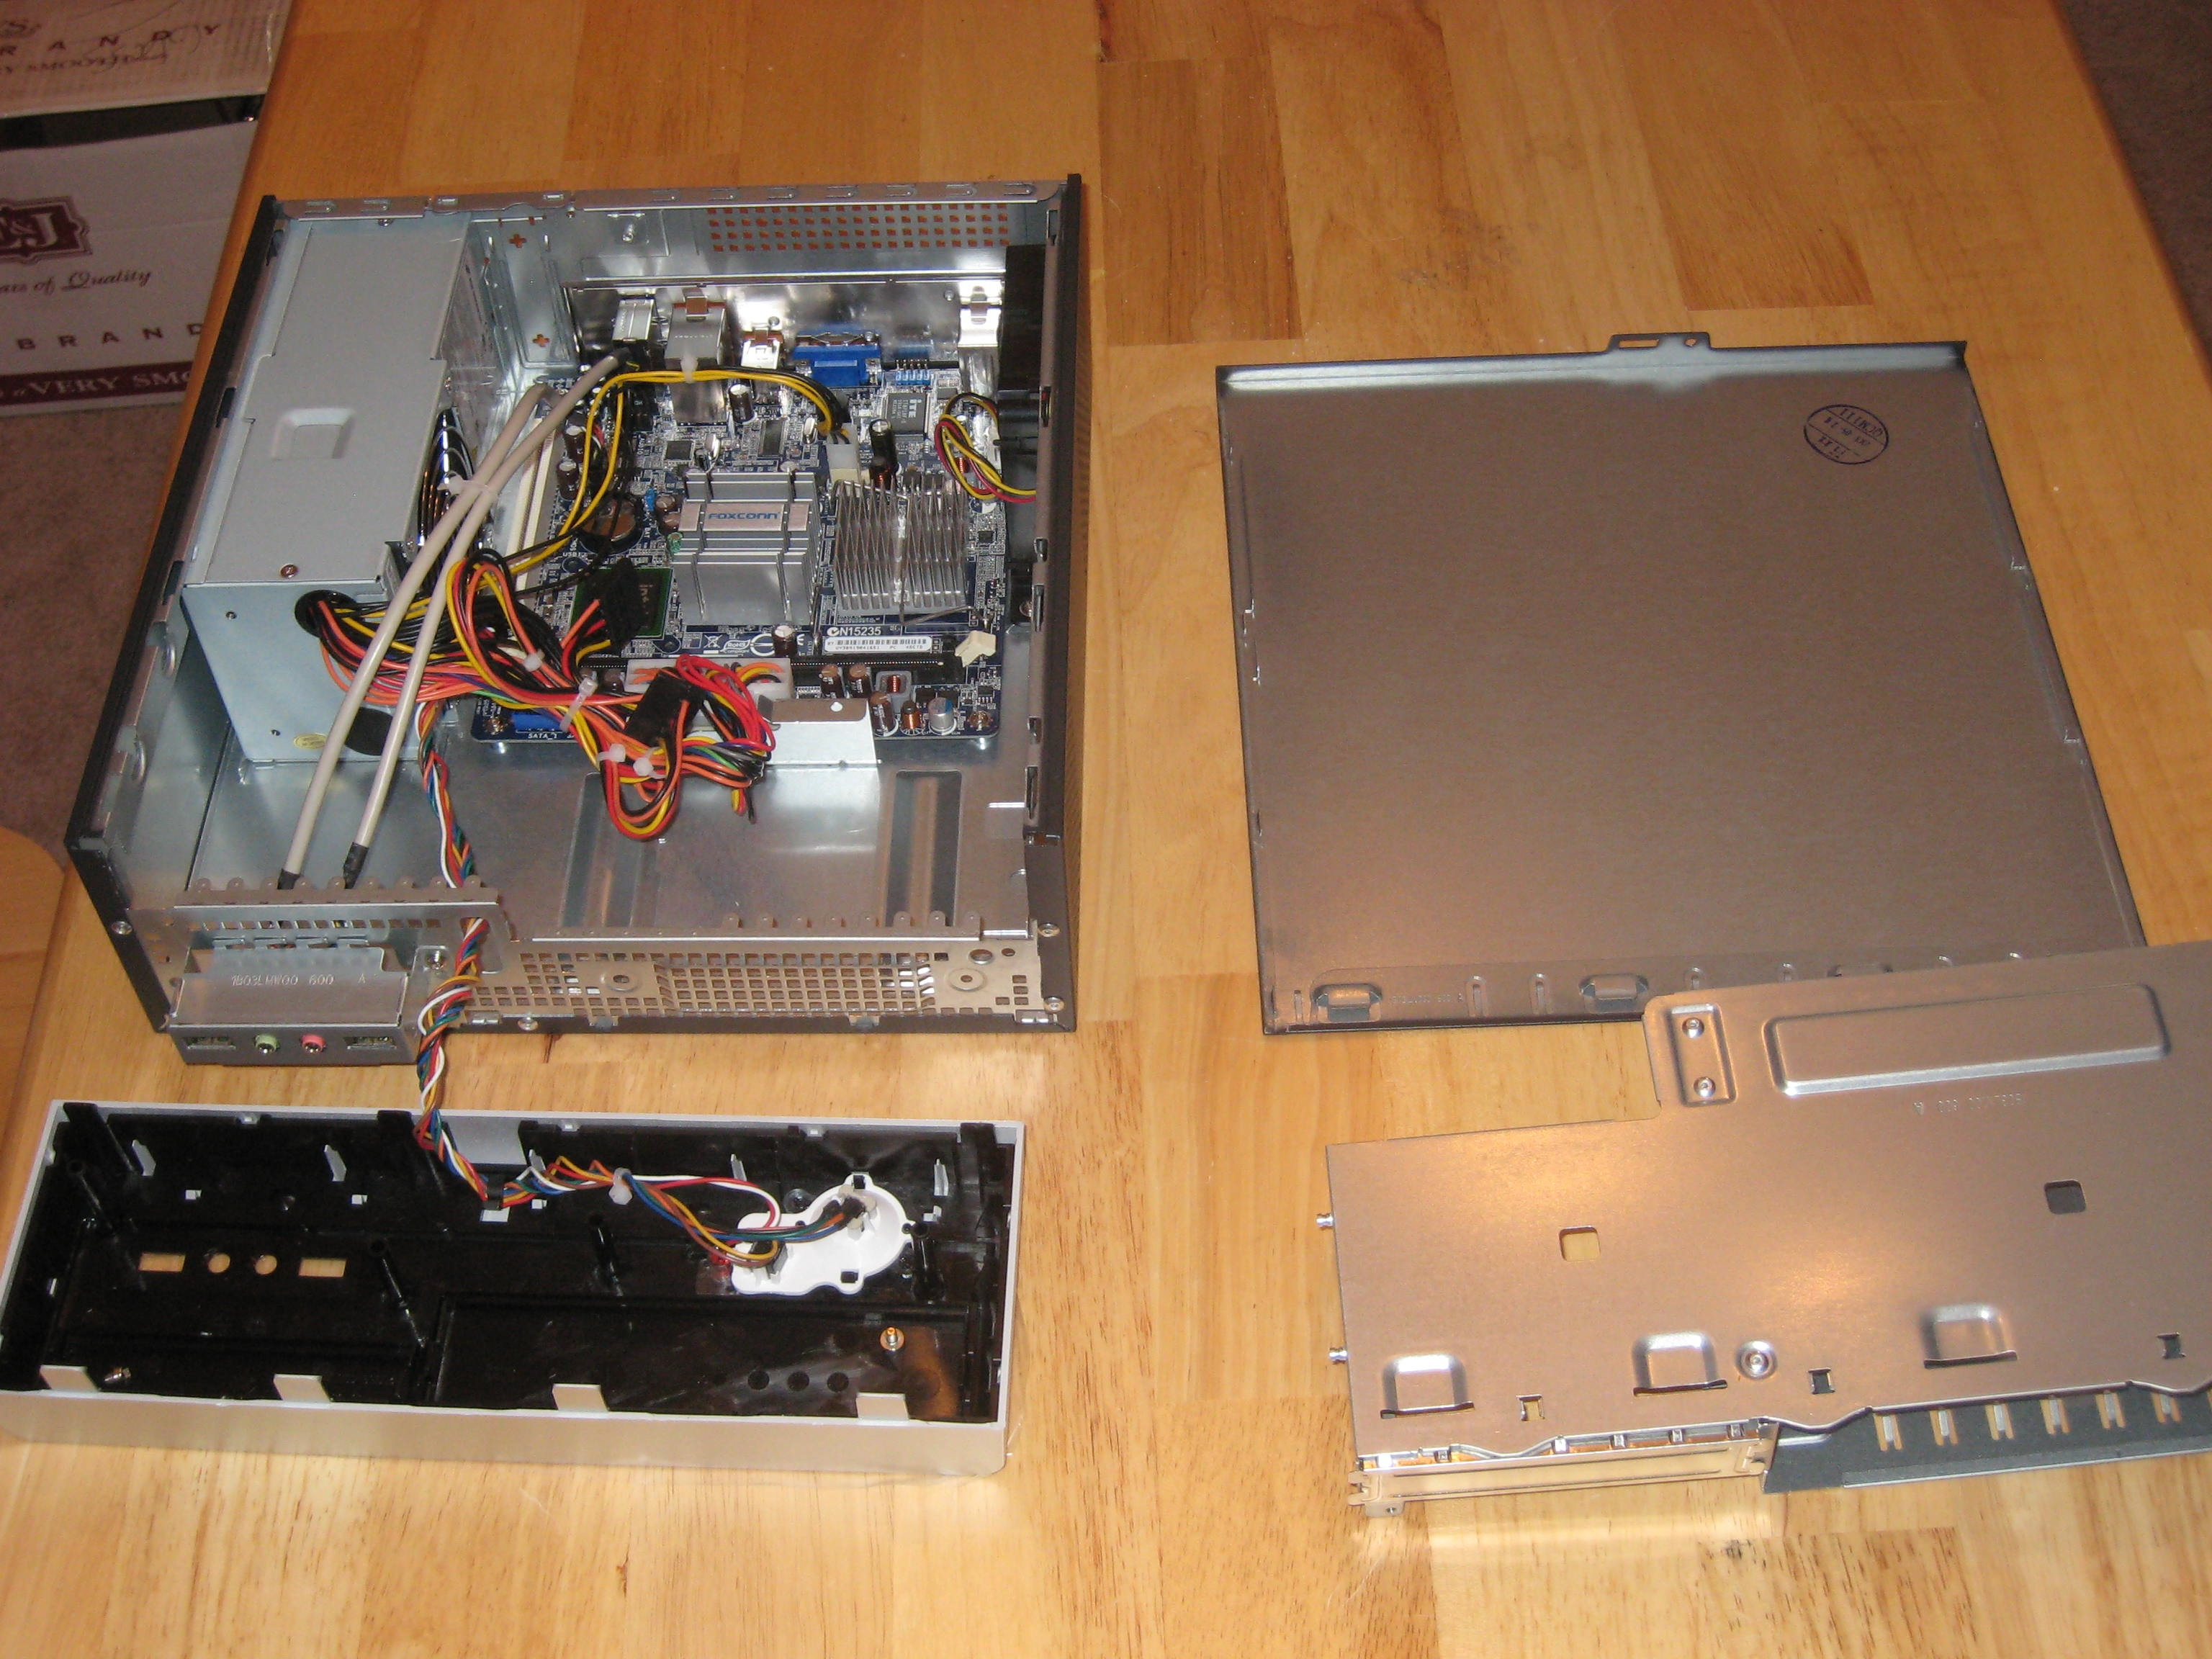 Inside of computer once everything has been taken apart.